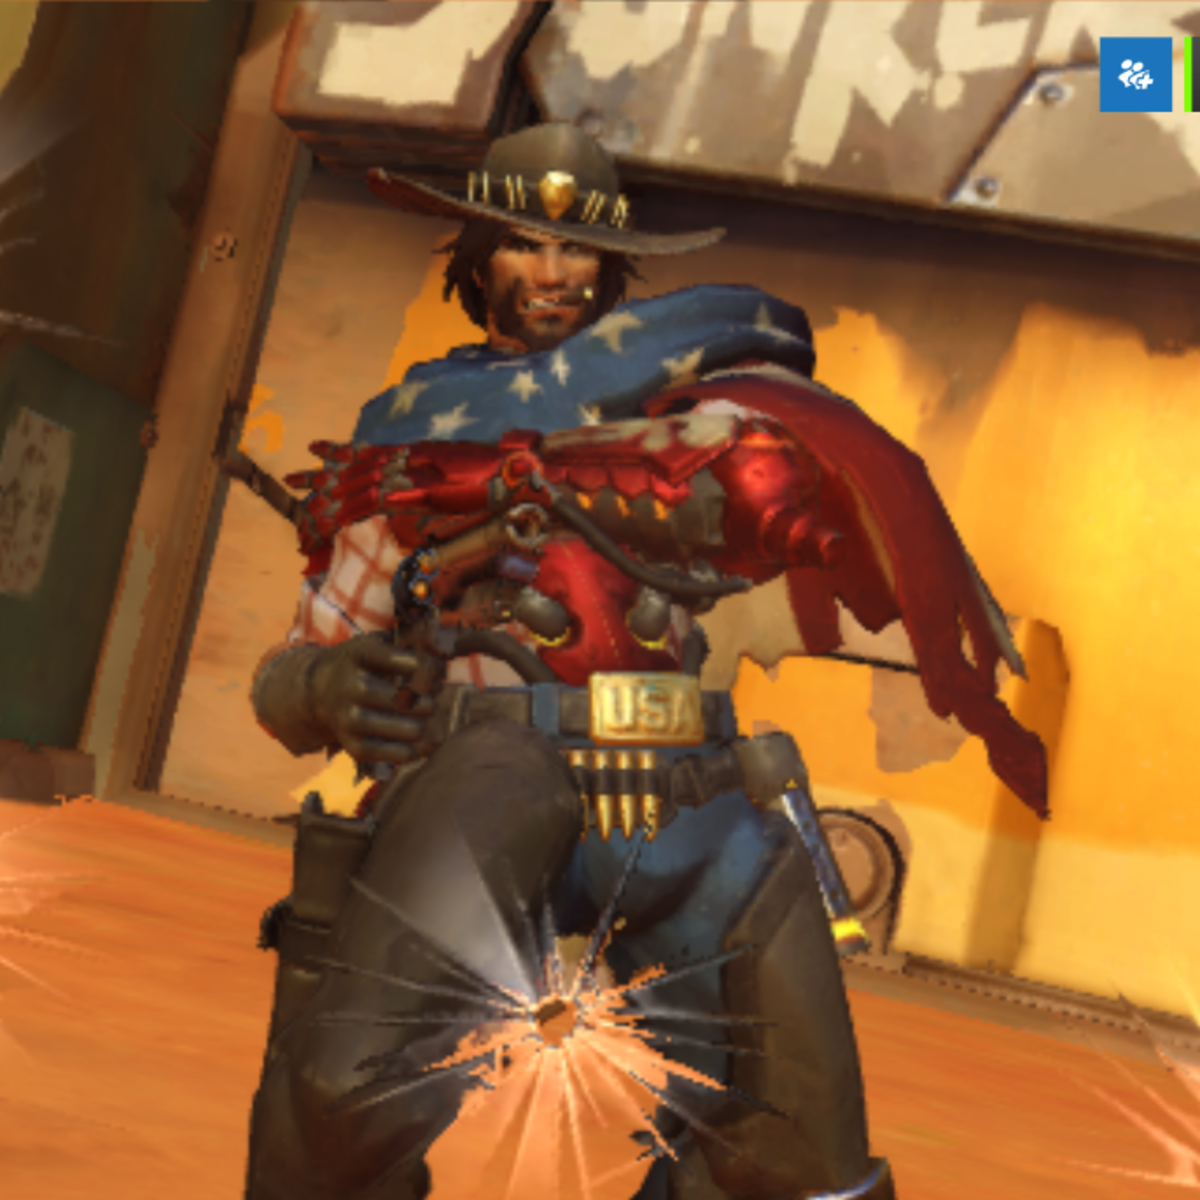 A cowboy wearing the American flag. Can't get more patriotic than that.